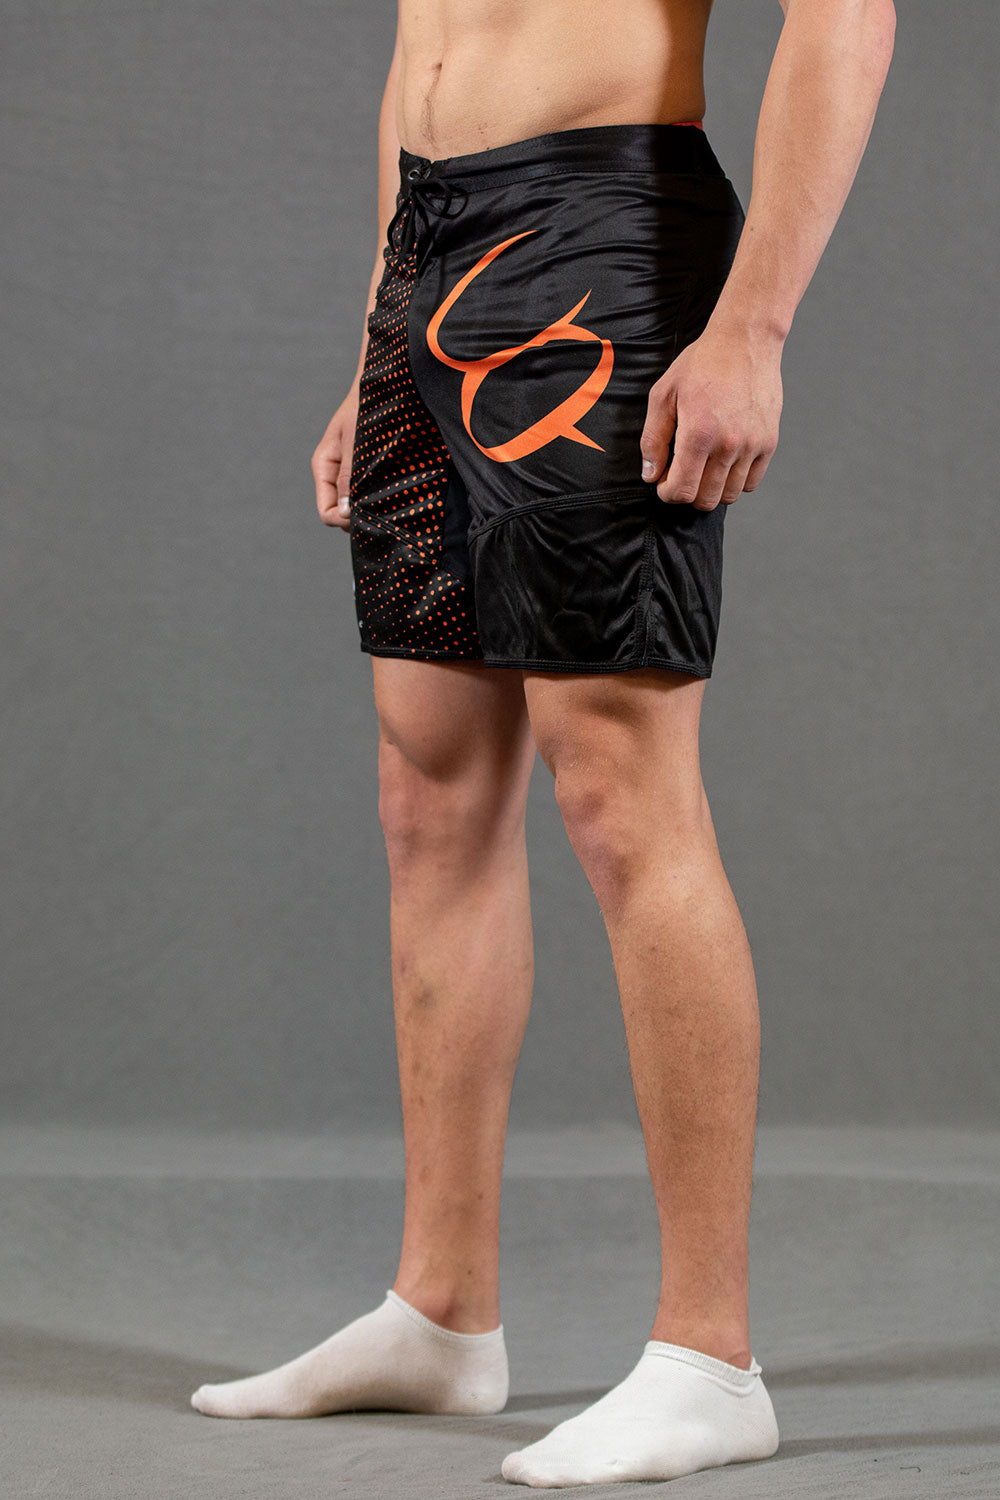 Conquer treningsshorts herre - Oransje